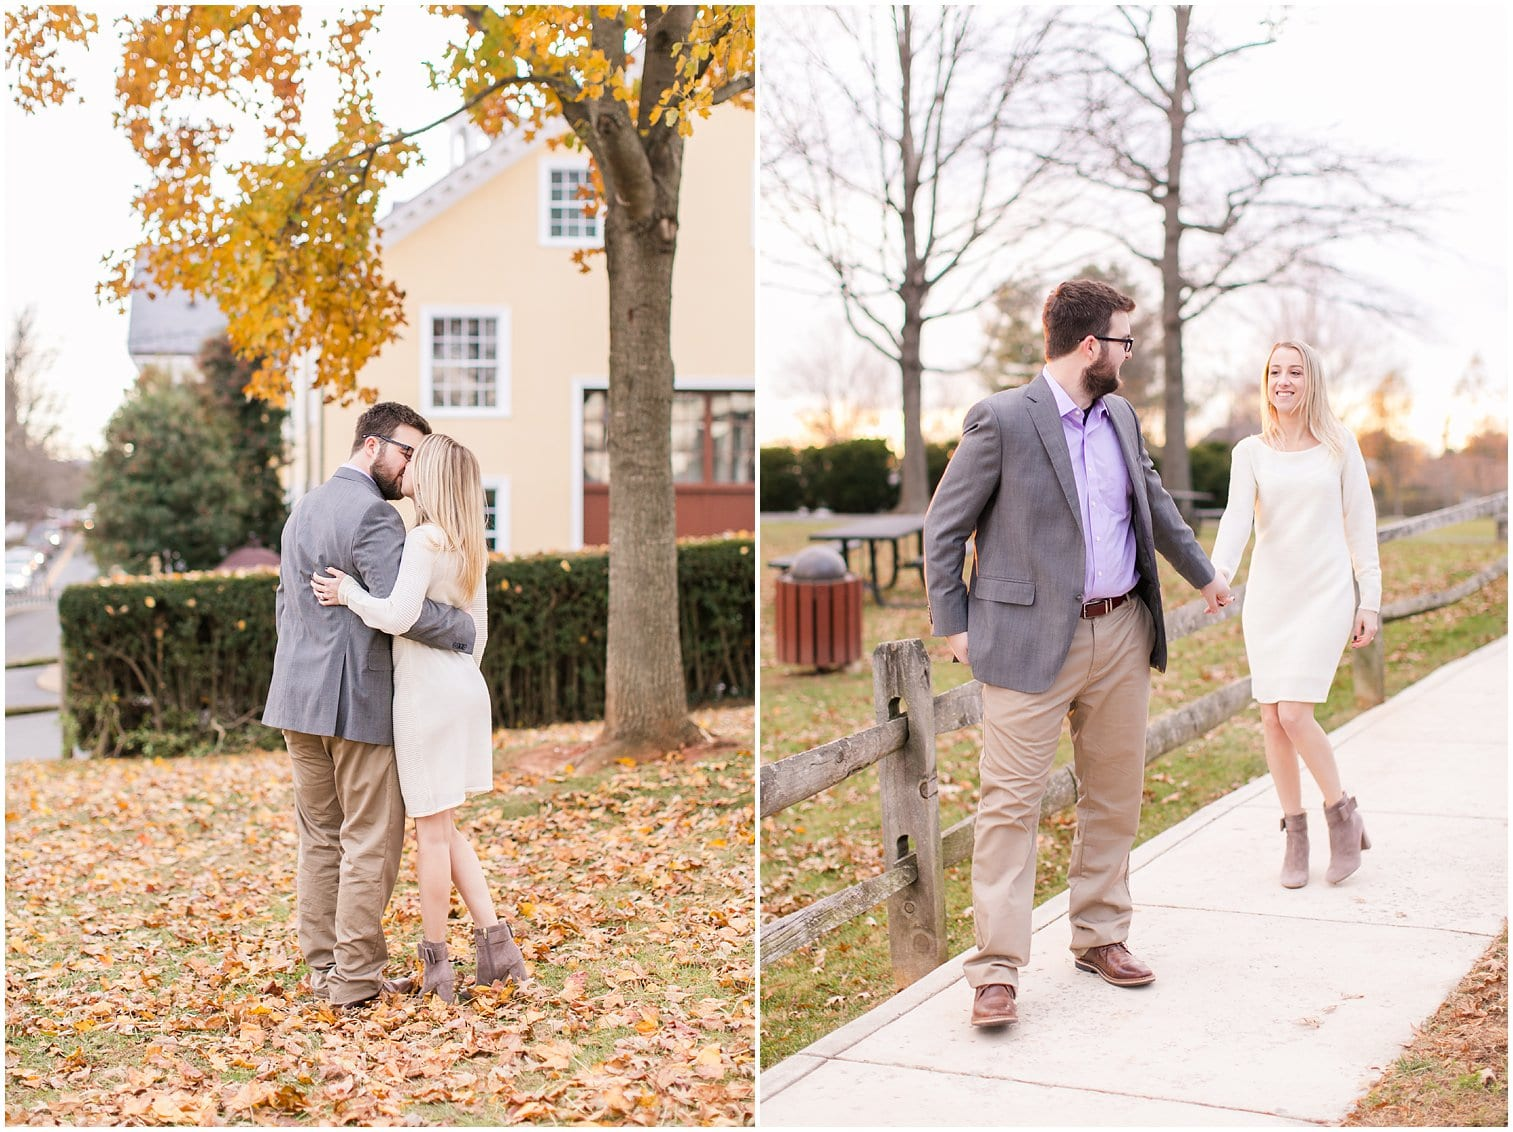 Downtown Middleburg Engagement Photos Virginia Wedding Photographer Megan Kelsey Photography Blair & Mike-208.jpg